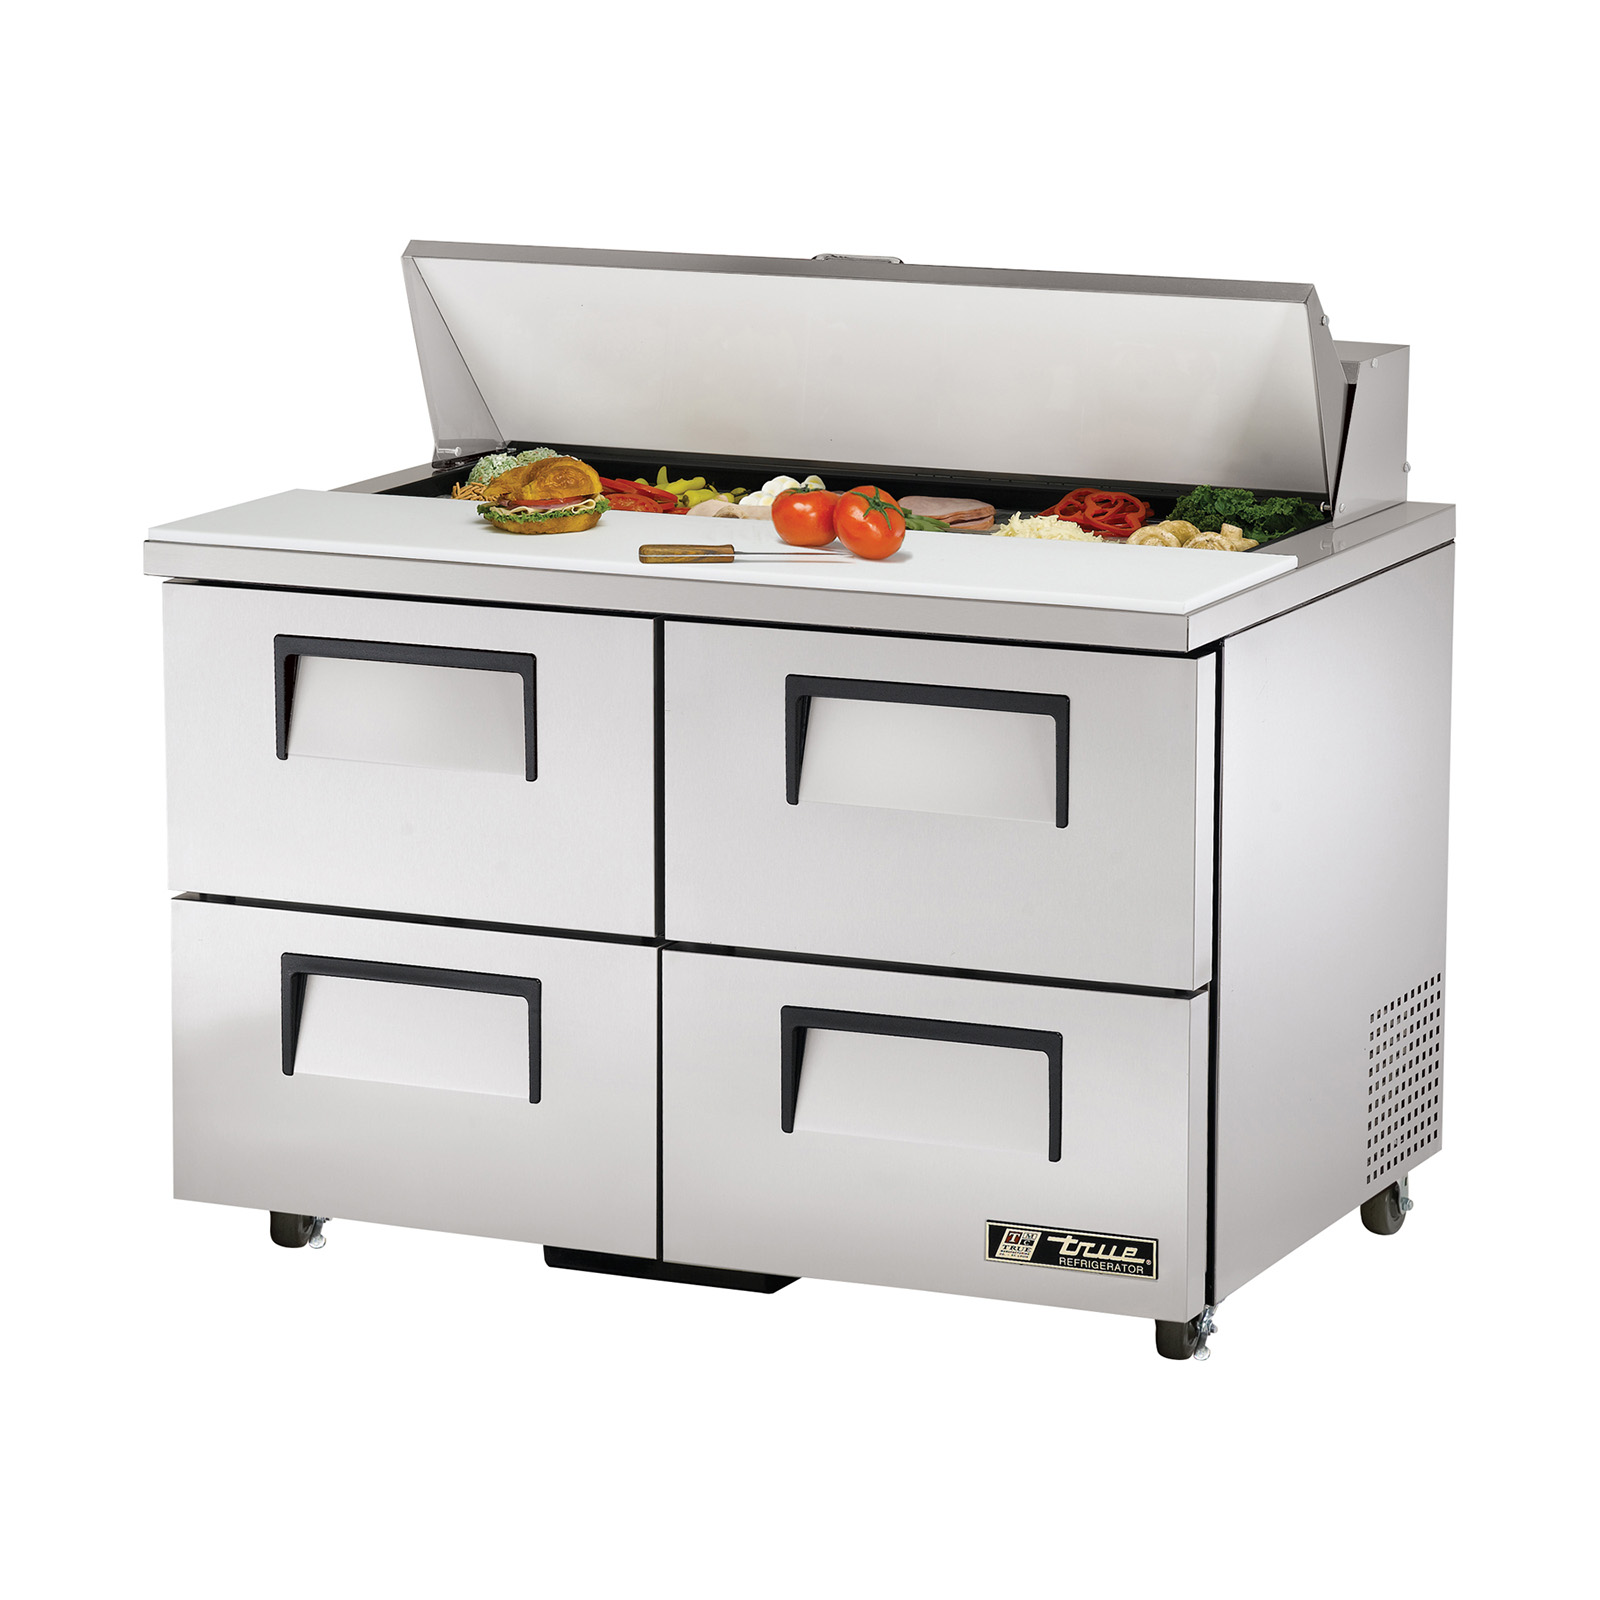 TSSU-48-12D-4-ADA True - ADA Compliant Sandwich/Salad Unit (12) 1/6 size (4